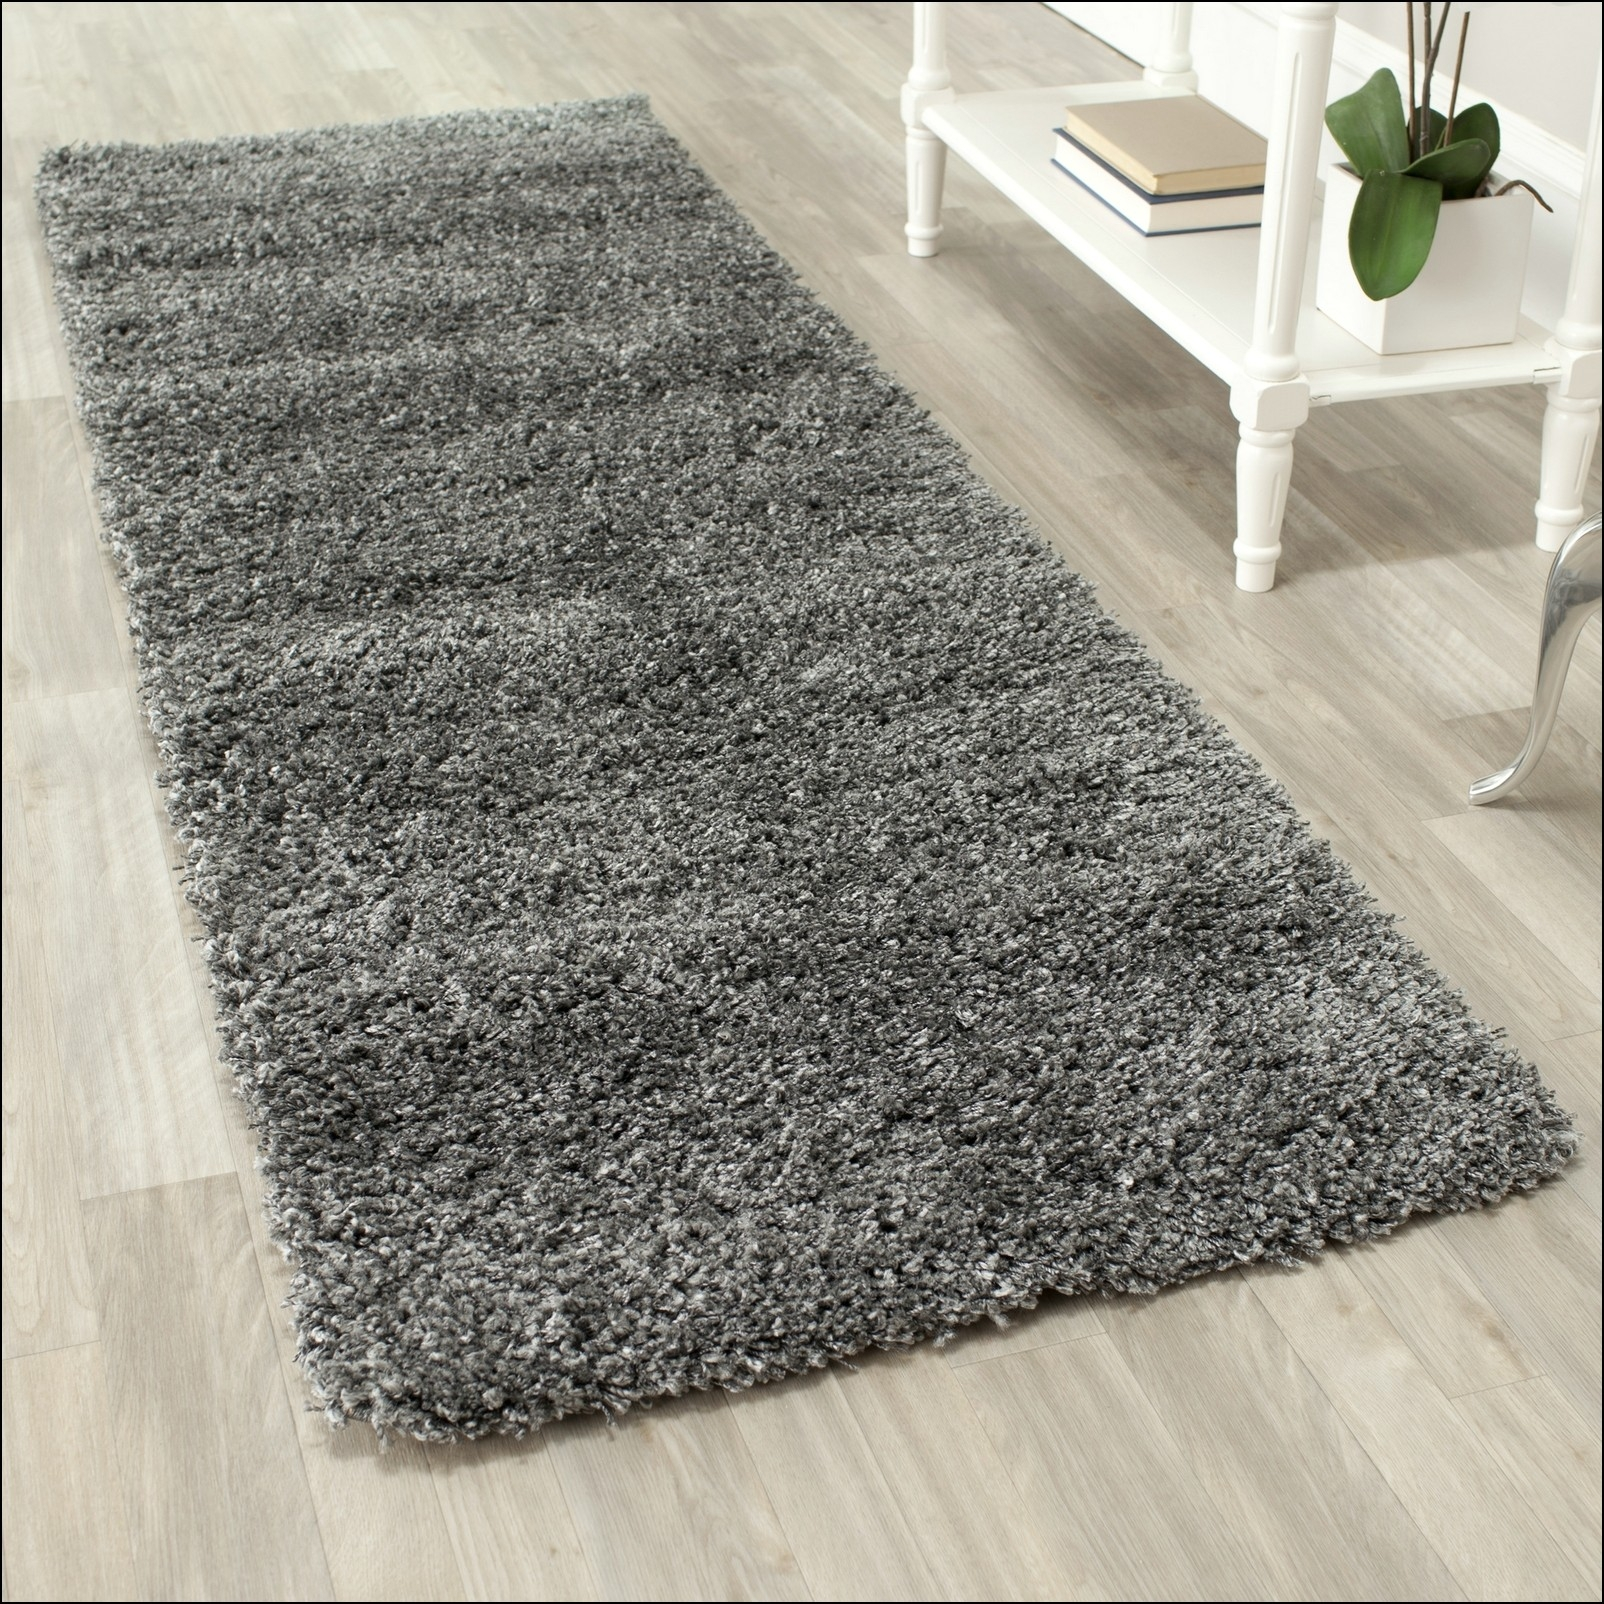 Permalink to 3′ X 5′ Cotton Bath Rug